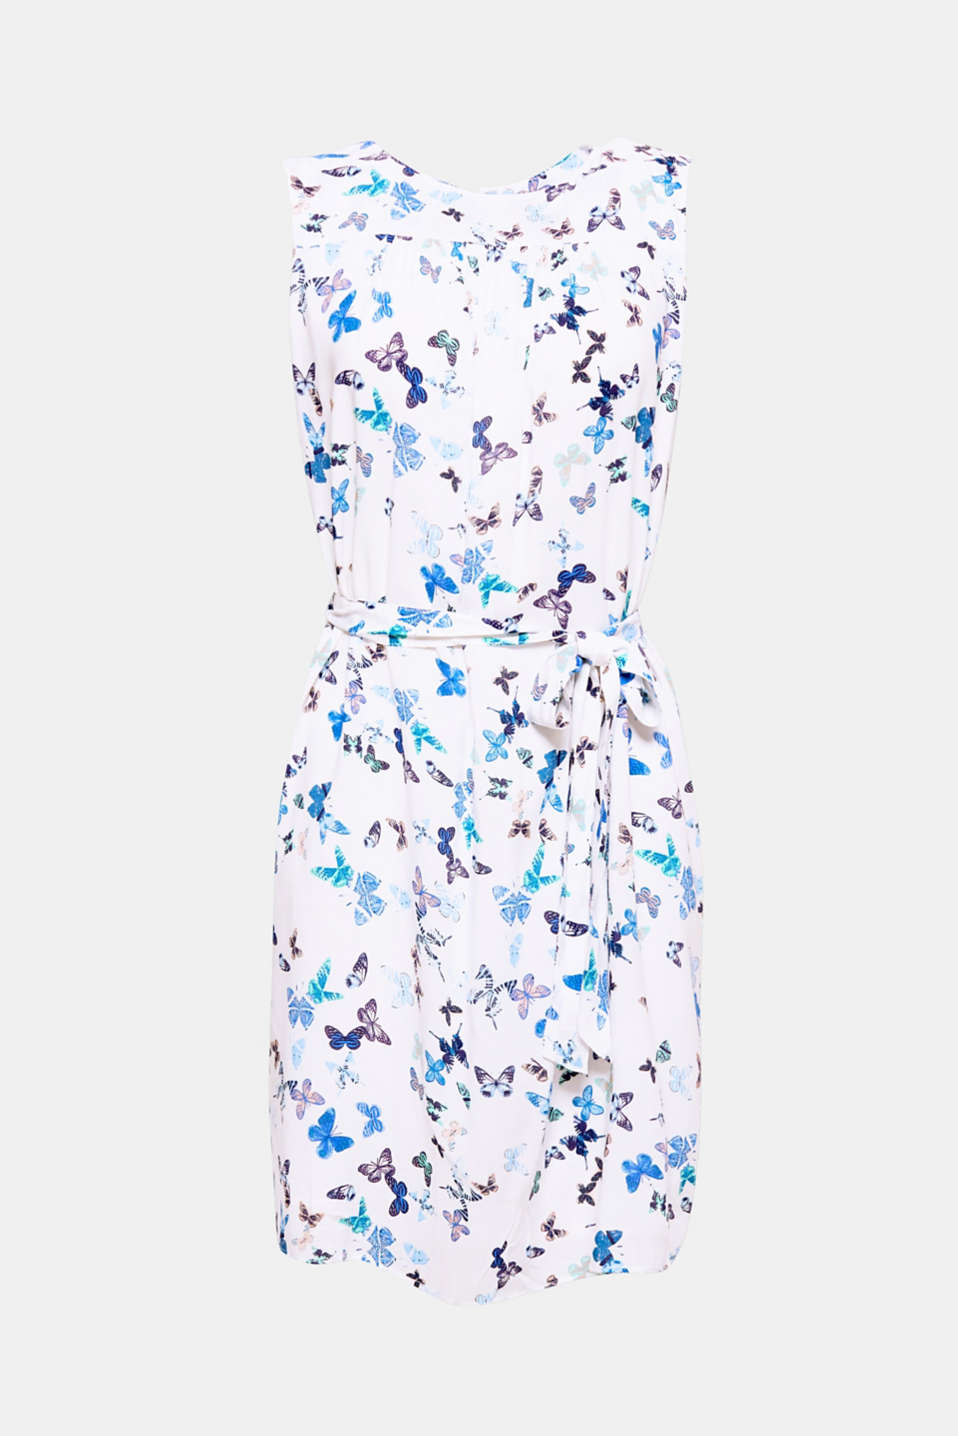 A pretty look for hot days: With this lightweight dress with a butterfly print and tie-around print, you will look feminine and trendy, even at the height of summer!